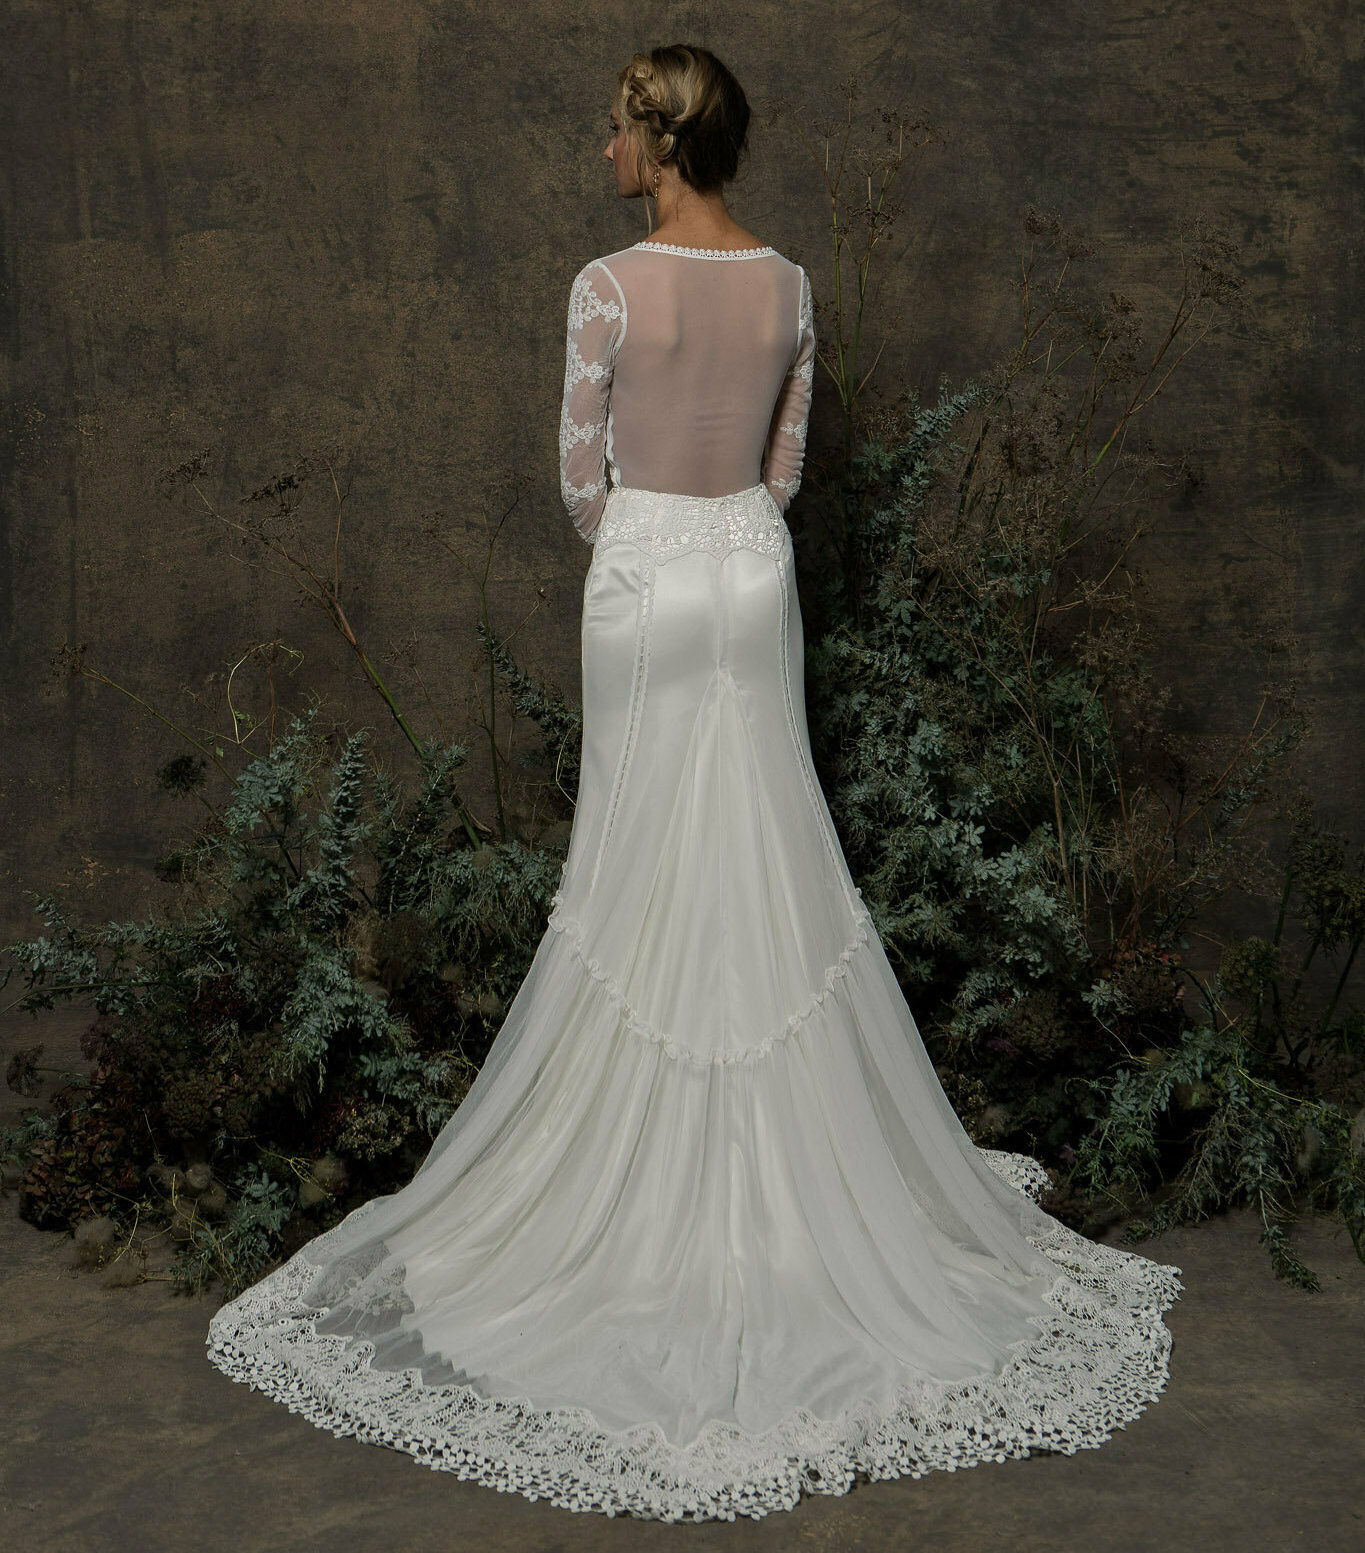 ivory-lace-elegant-bohemian-wedding-dress-with-sheer-illusion-back-figure-hugging-with-long-sleeves